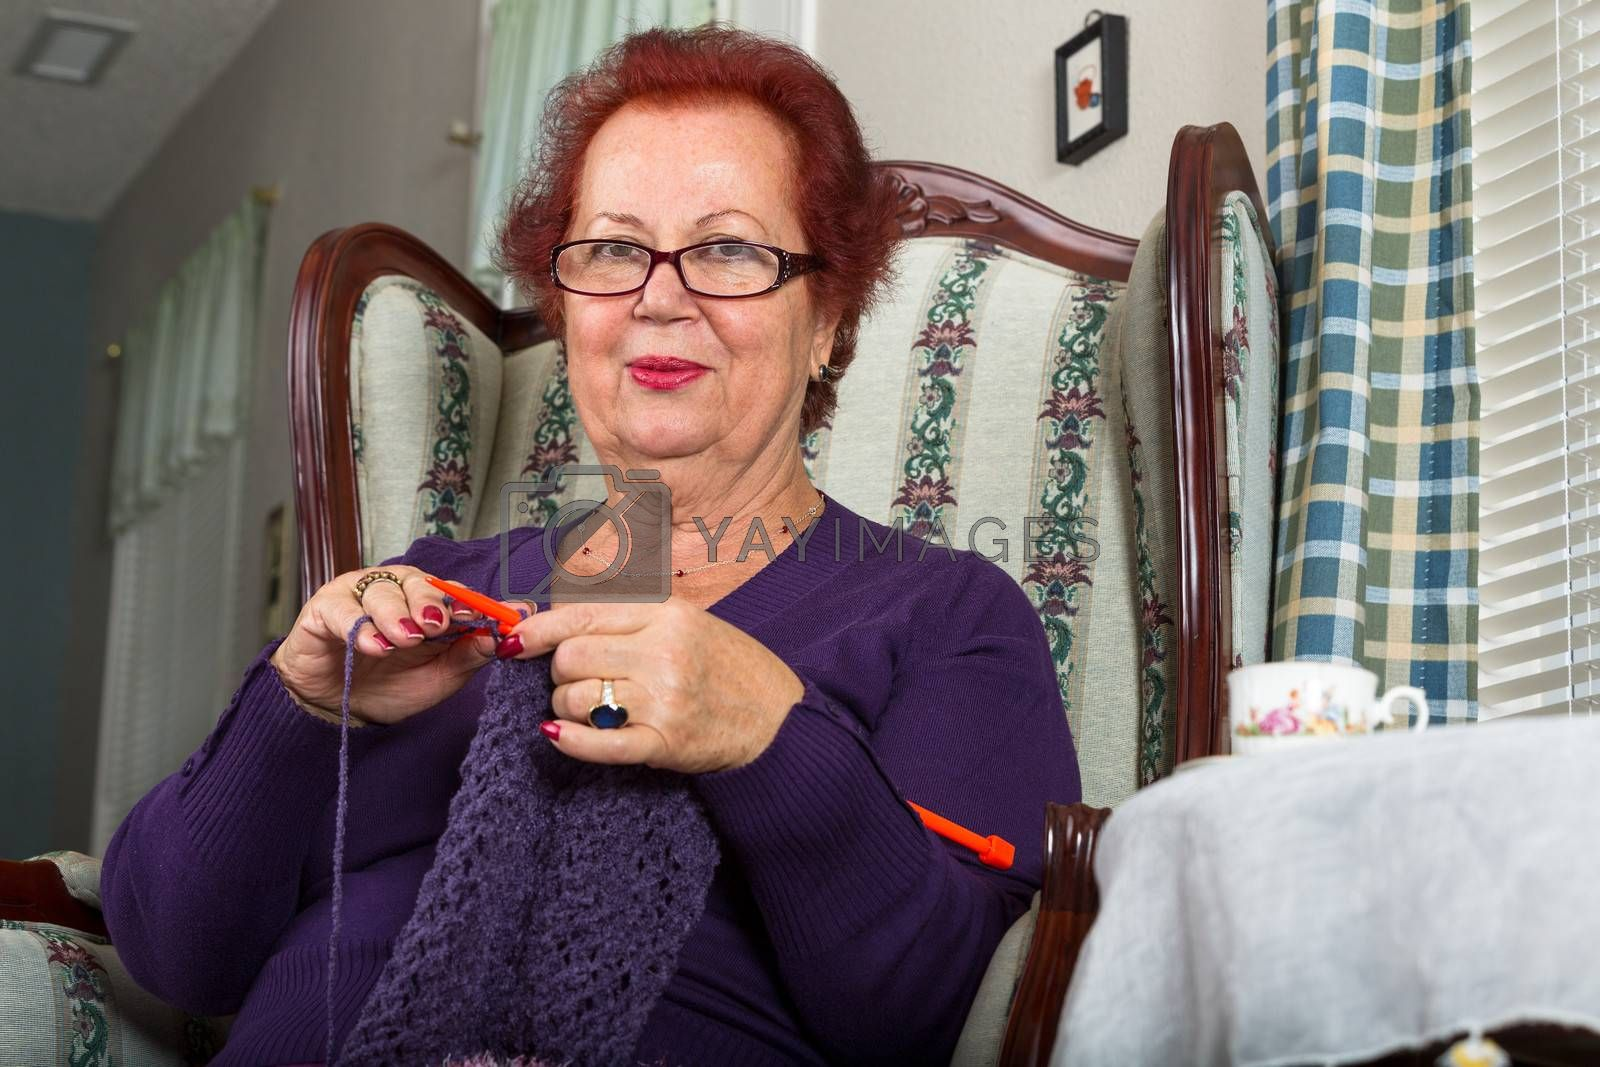 Red haired senior lady looking at you right bewlow her glasses while crocheting her purple scarf